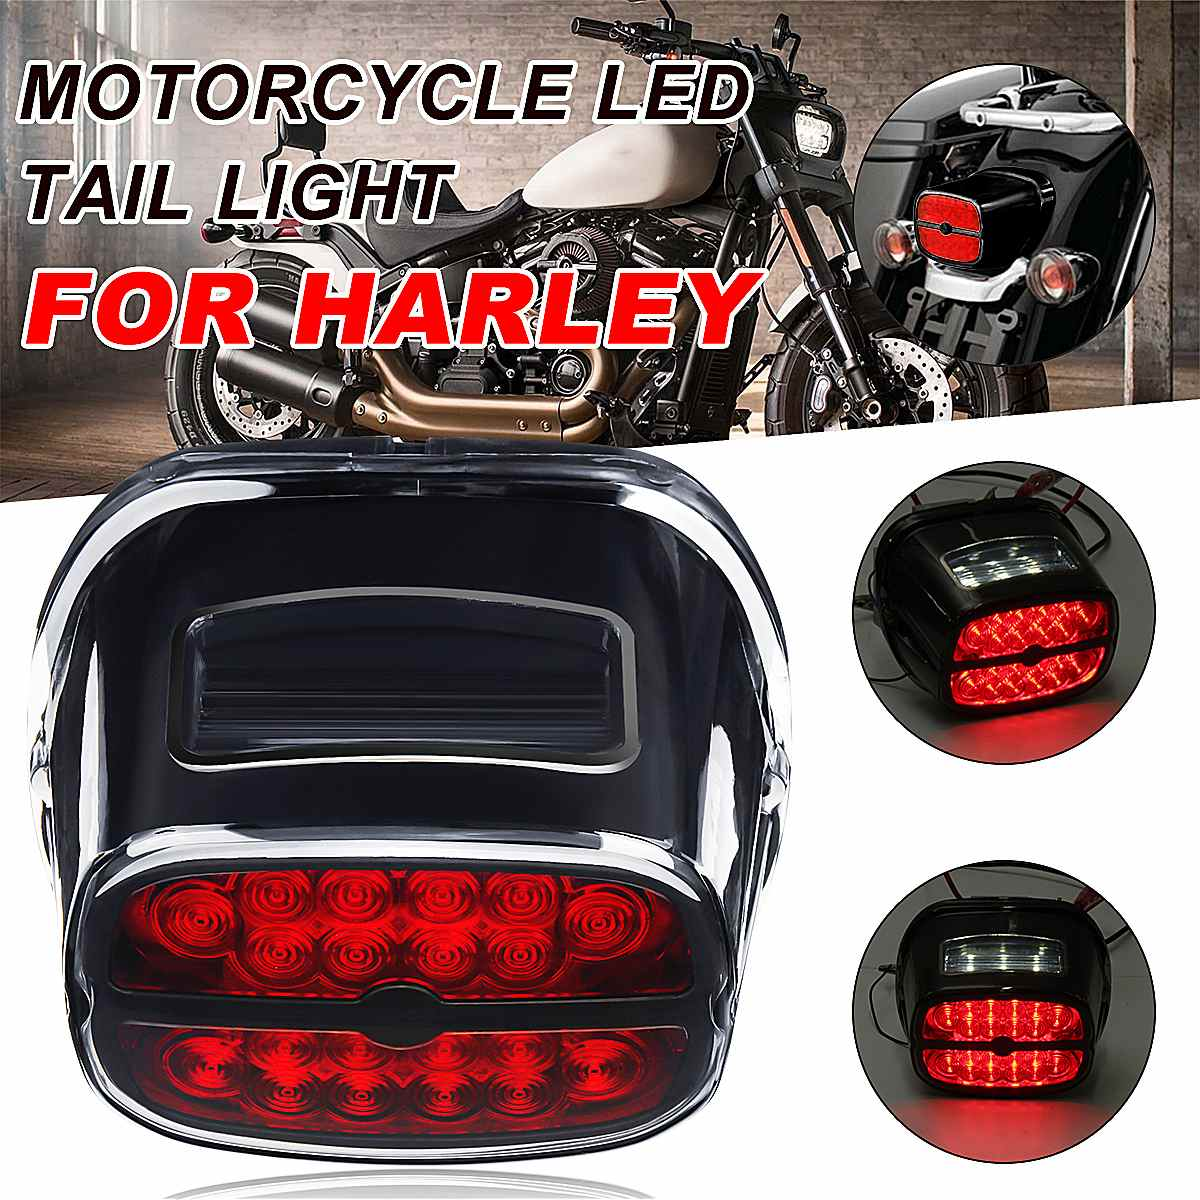 Motorcycle LED Tail Light Rear Brake Lights Turn Signal Number License Plate Lamp For Harley Fat Boy Road KingMotorcycle LED Tail Light Rear Brake Lights Turn Signal Number License Plate Lamp For Harley Fat Boy Road King